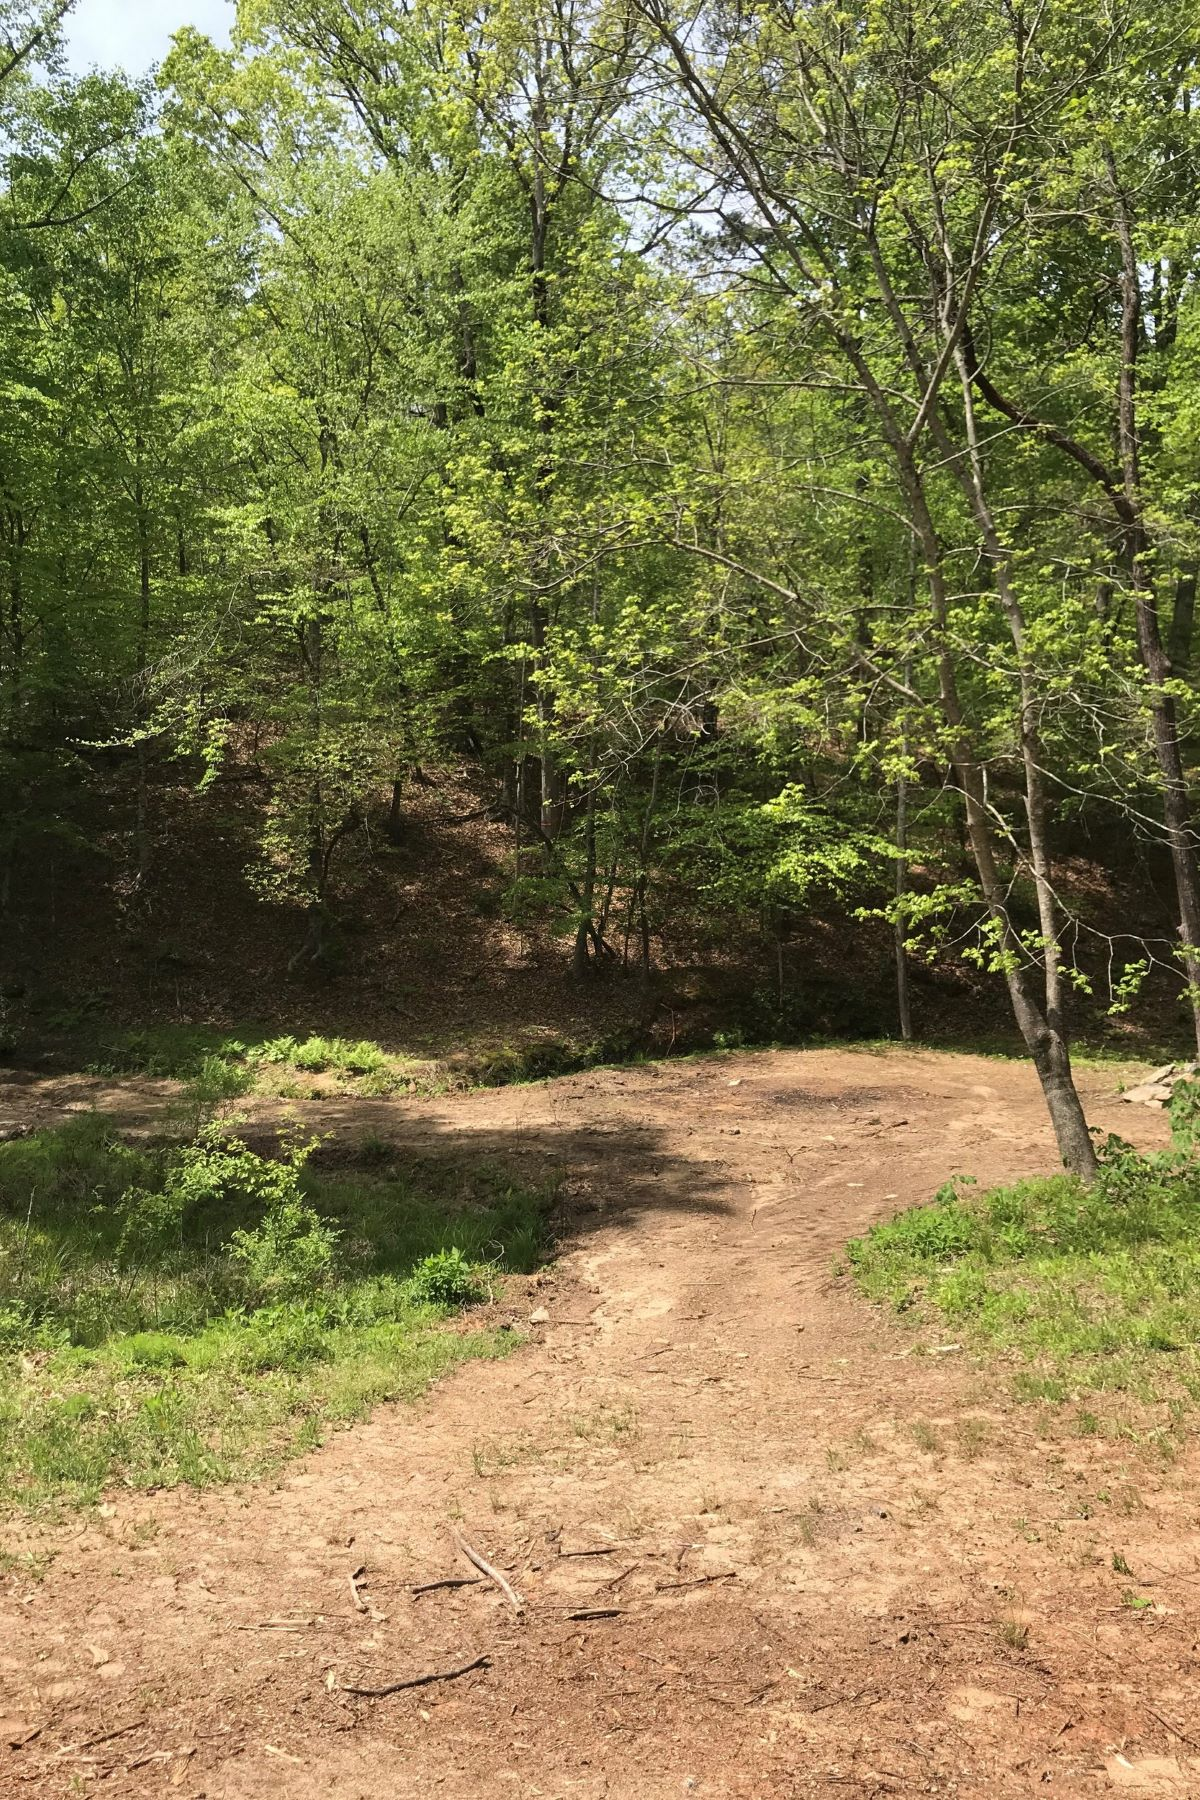 Land for Sale at Lot #70 Ash Creek Lane, Rutherfordton, NC #70 Ash Creek Lane Rutherfordton, North Carolina 28139 United States